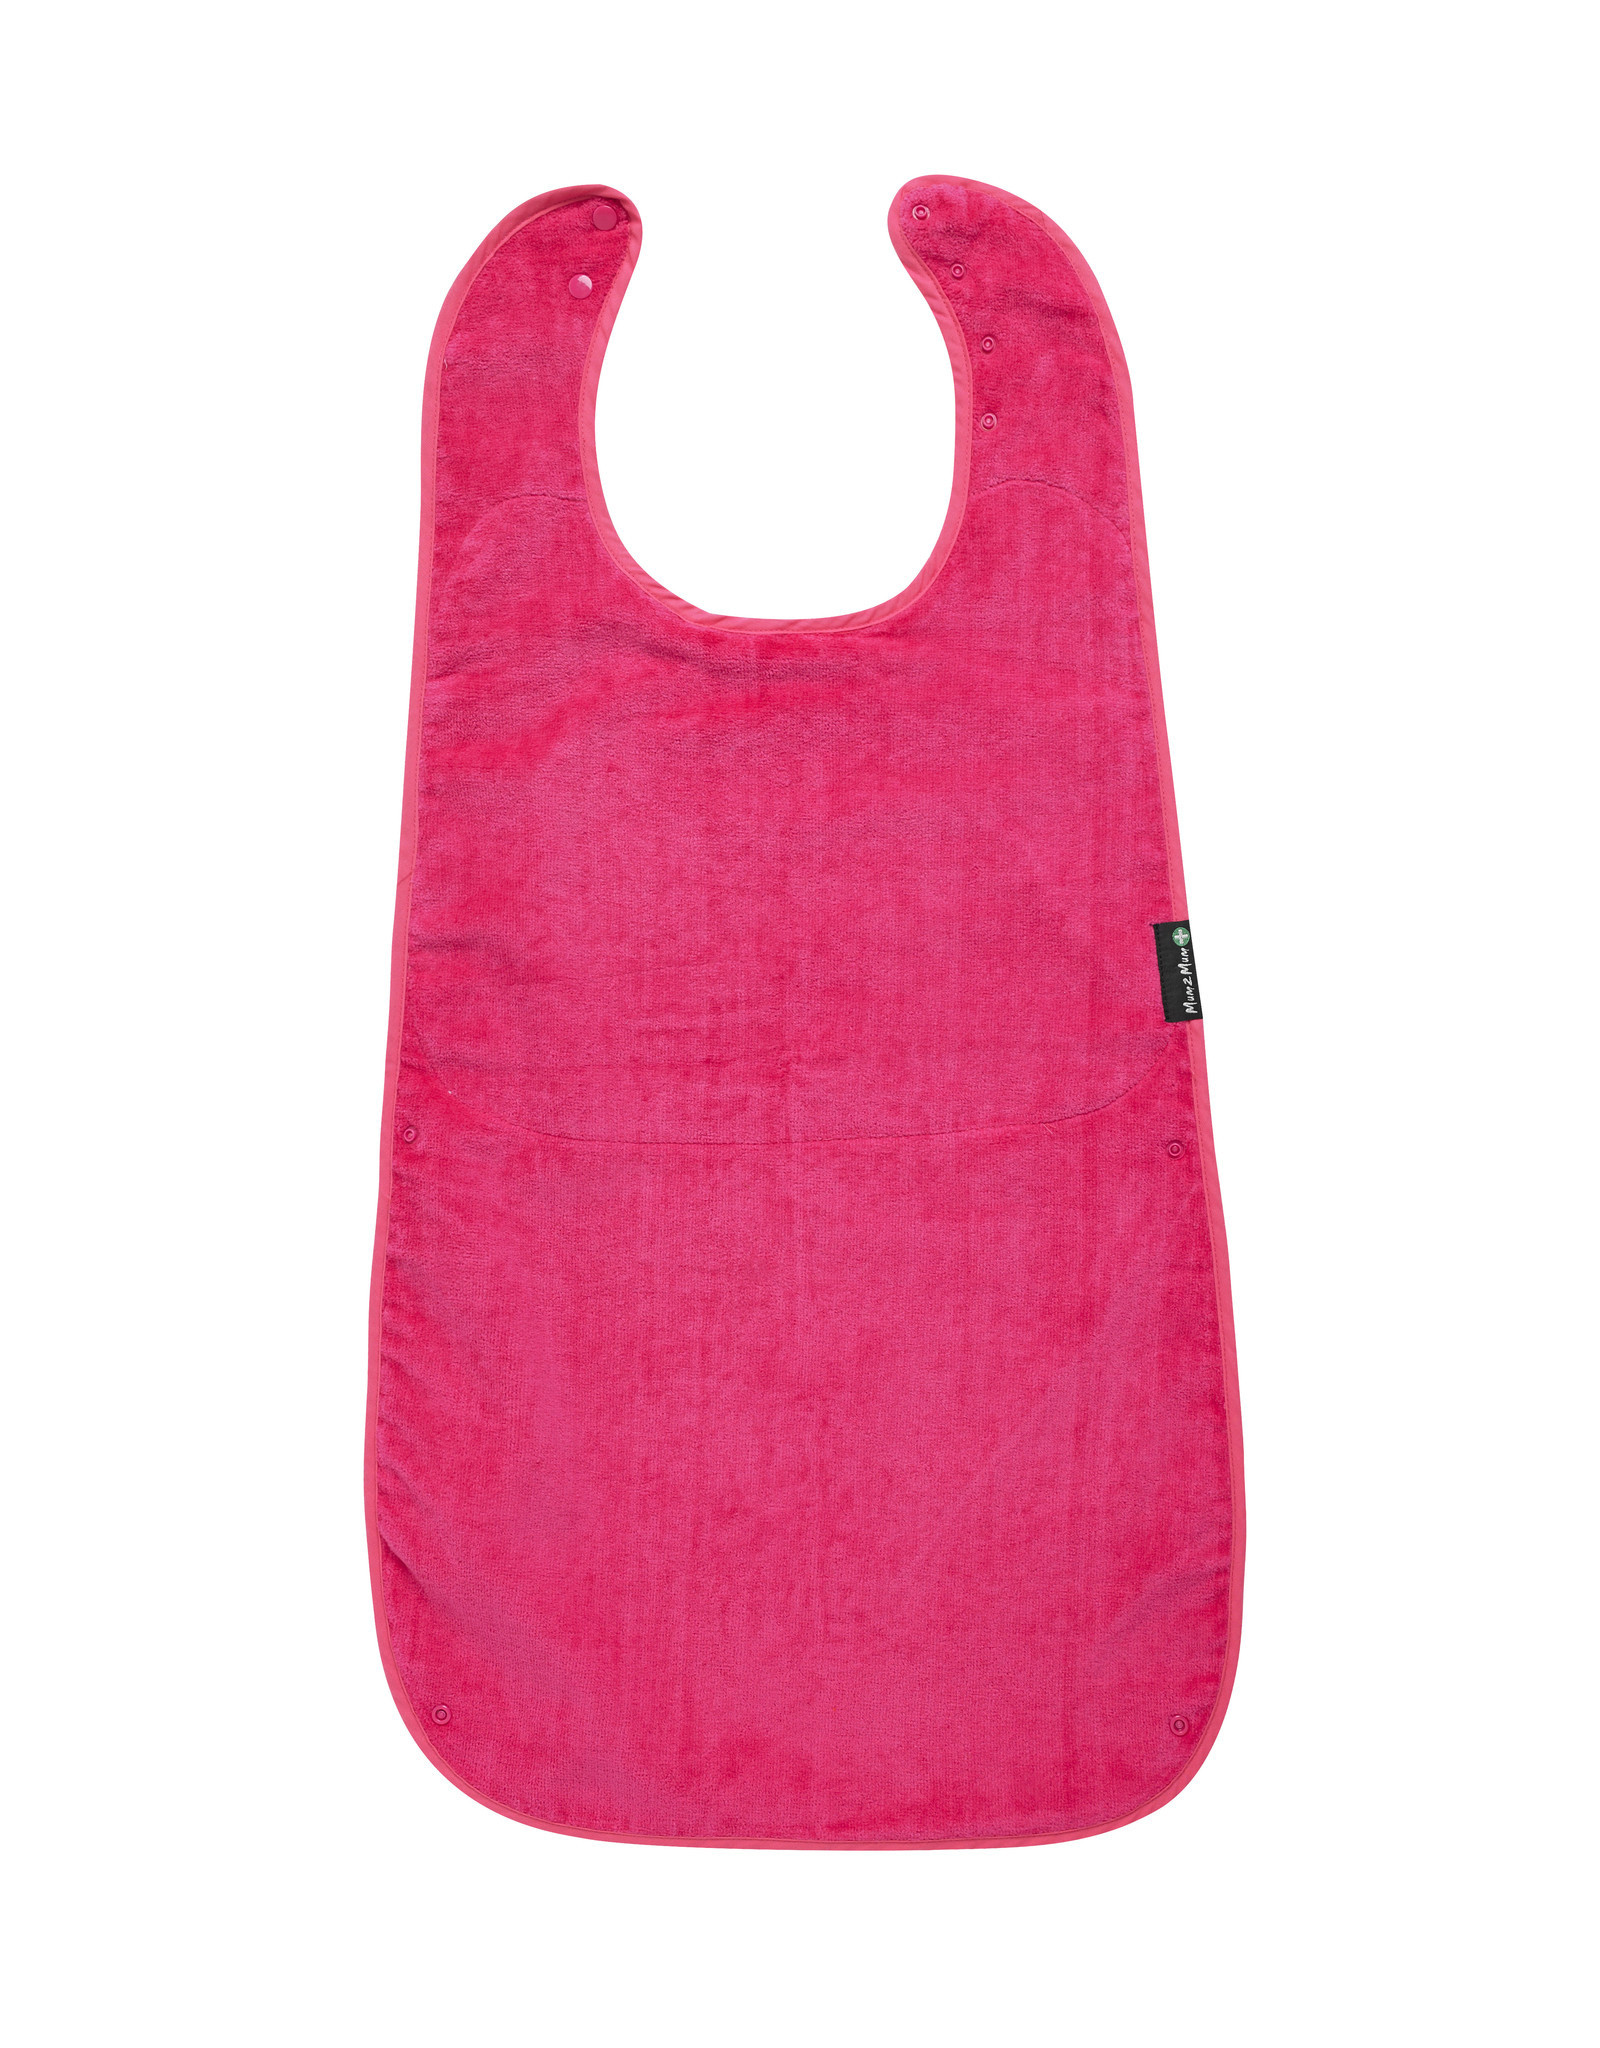 Mum2Mum Mum2Mum Plus Range Supersized Feeding Apron Cerise